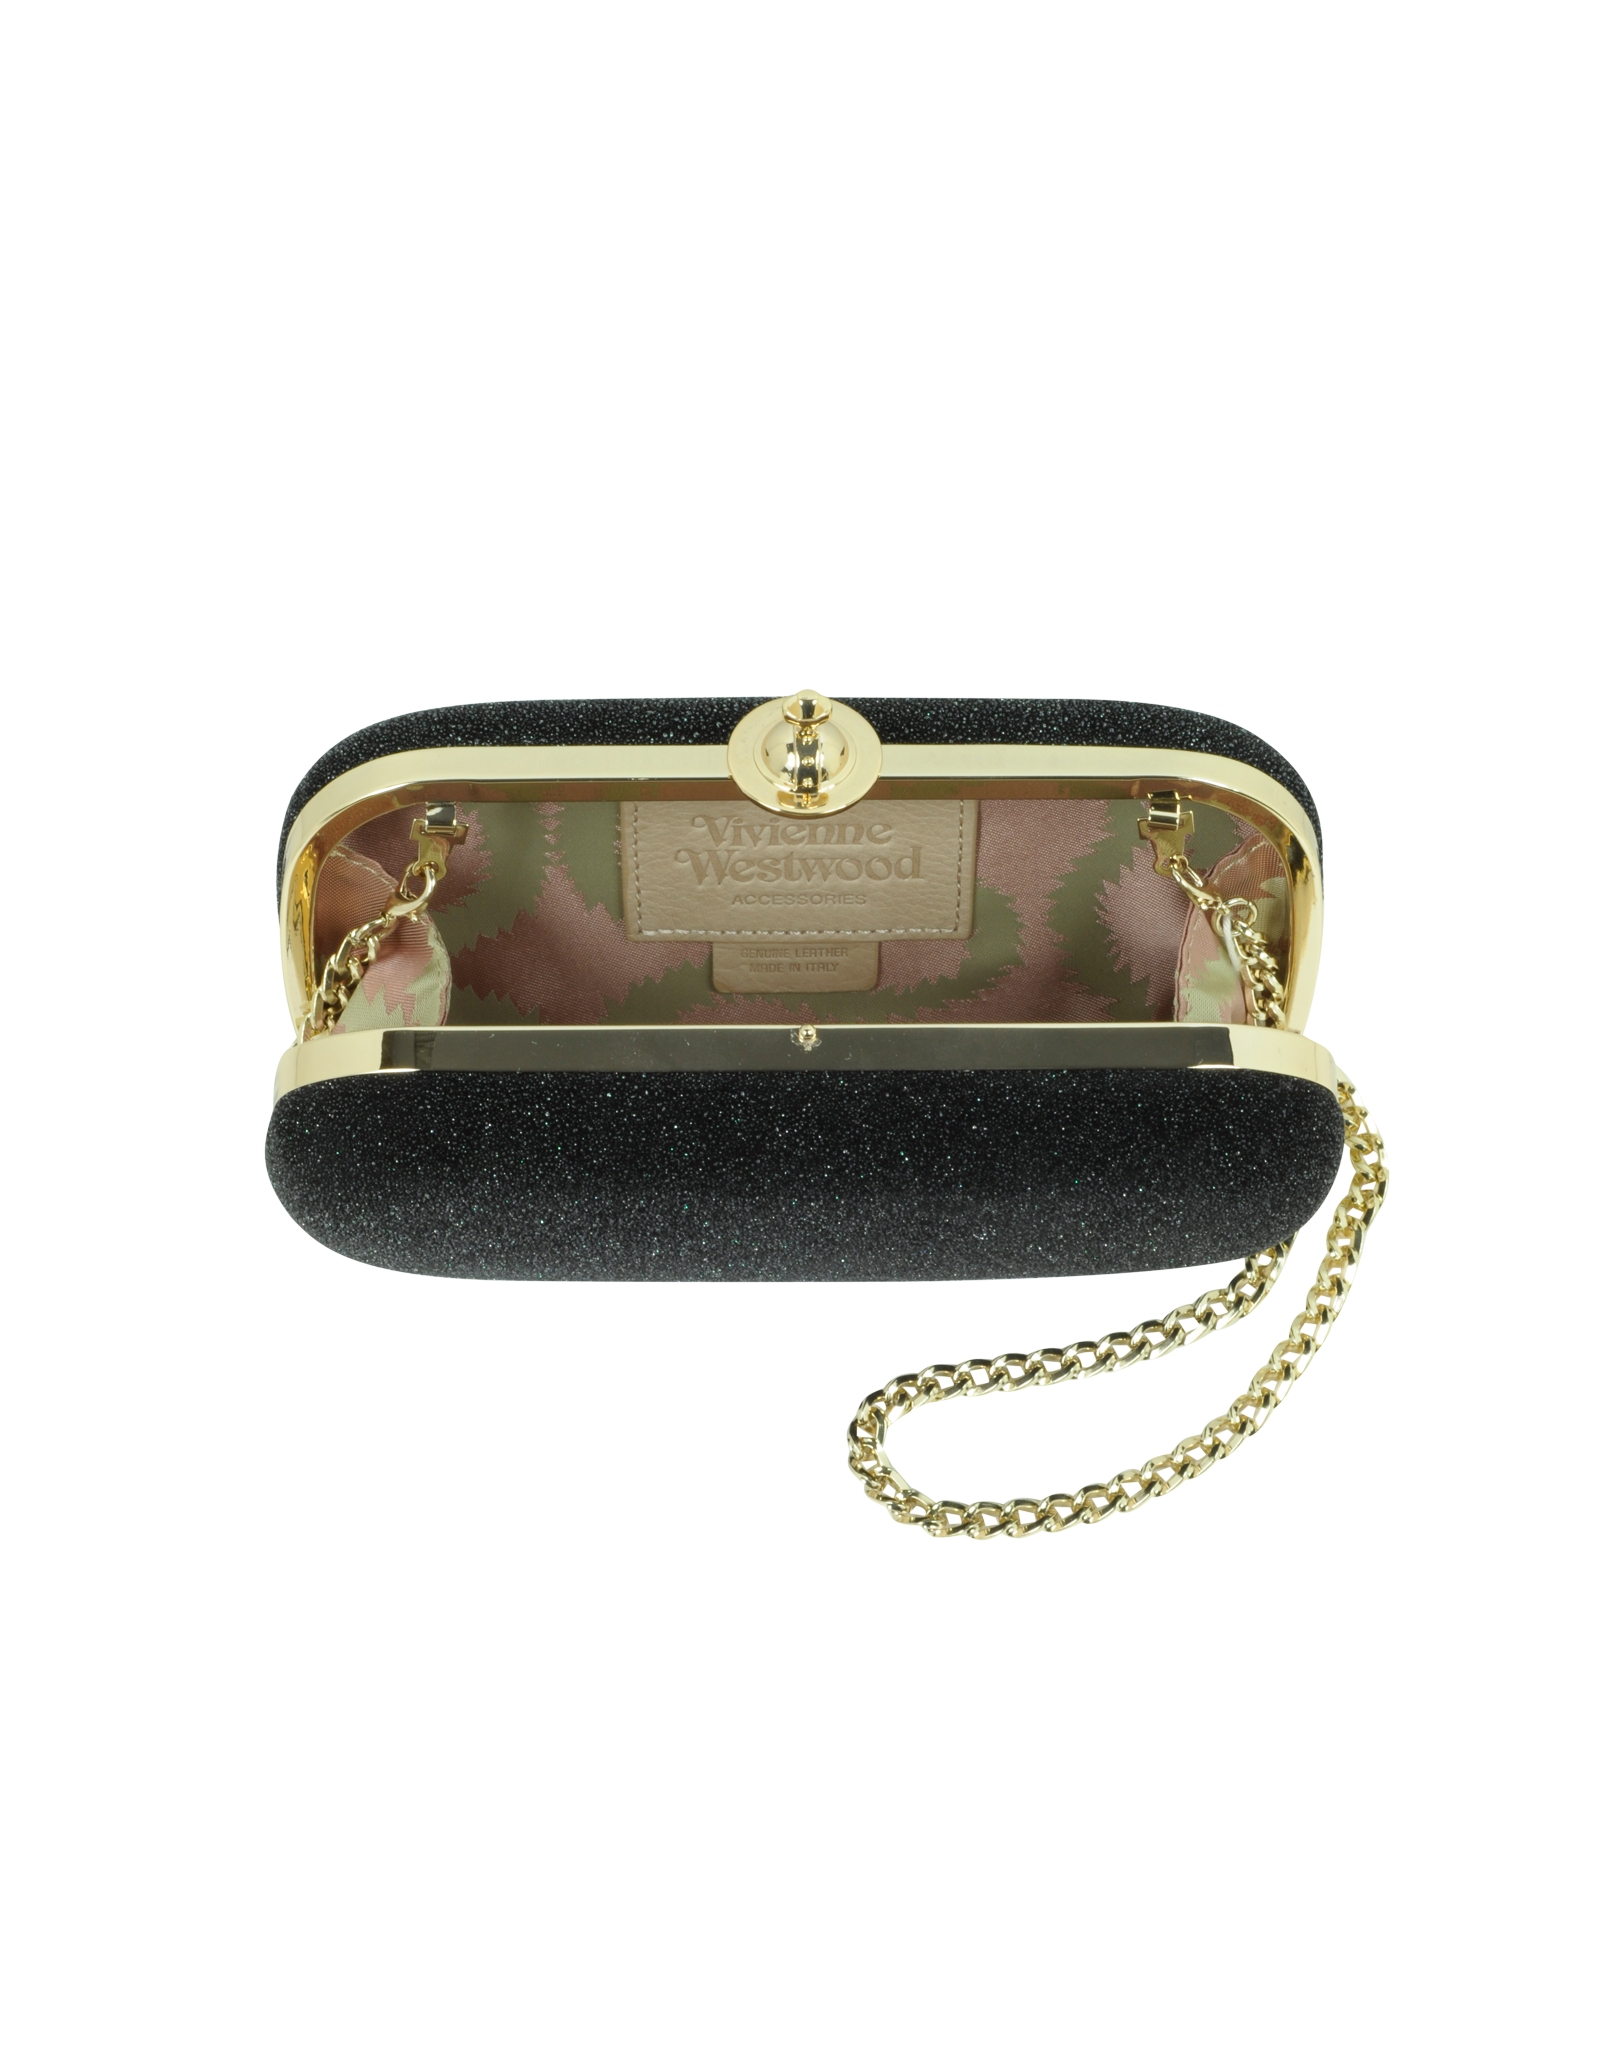 780ad6ac46d9e Lyst - Vivienne Westwood Angel Small Black Clutch in Black